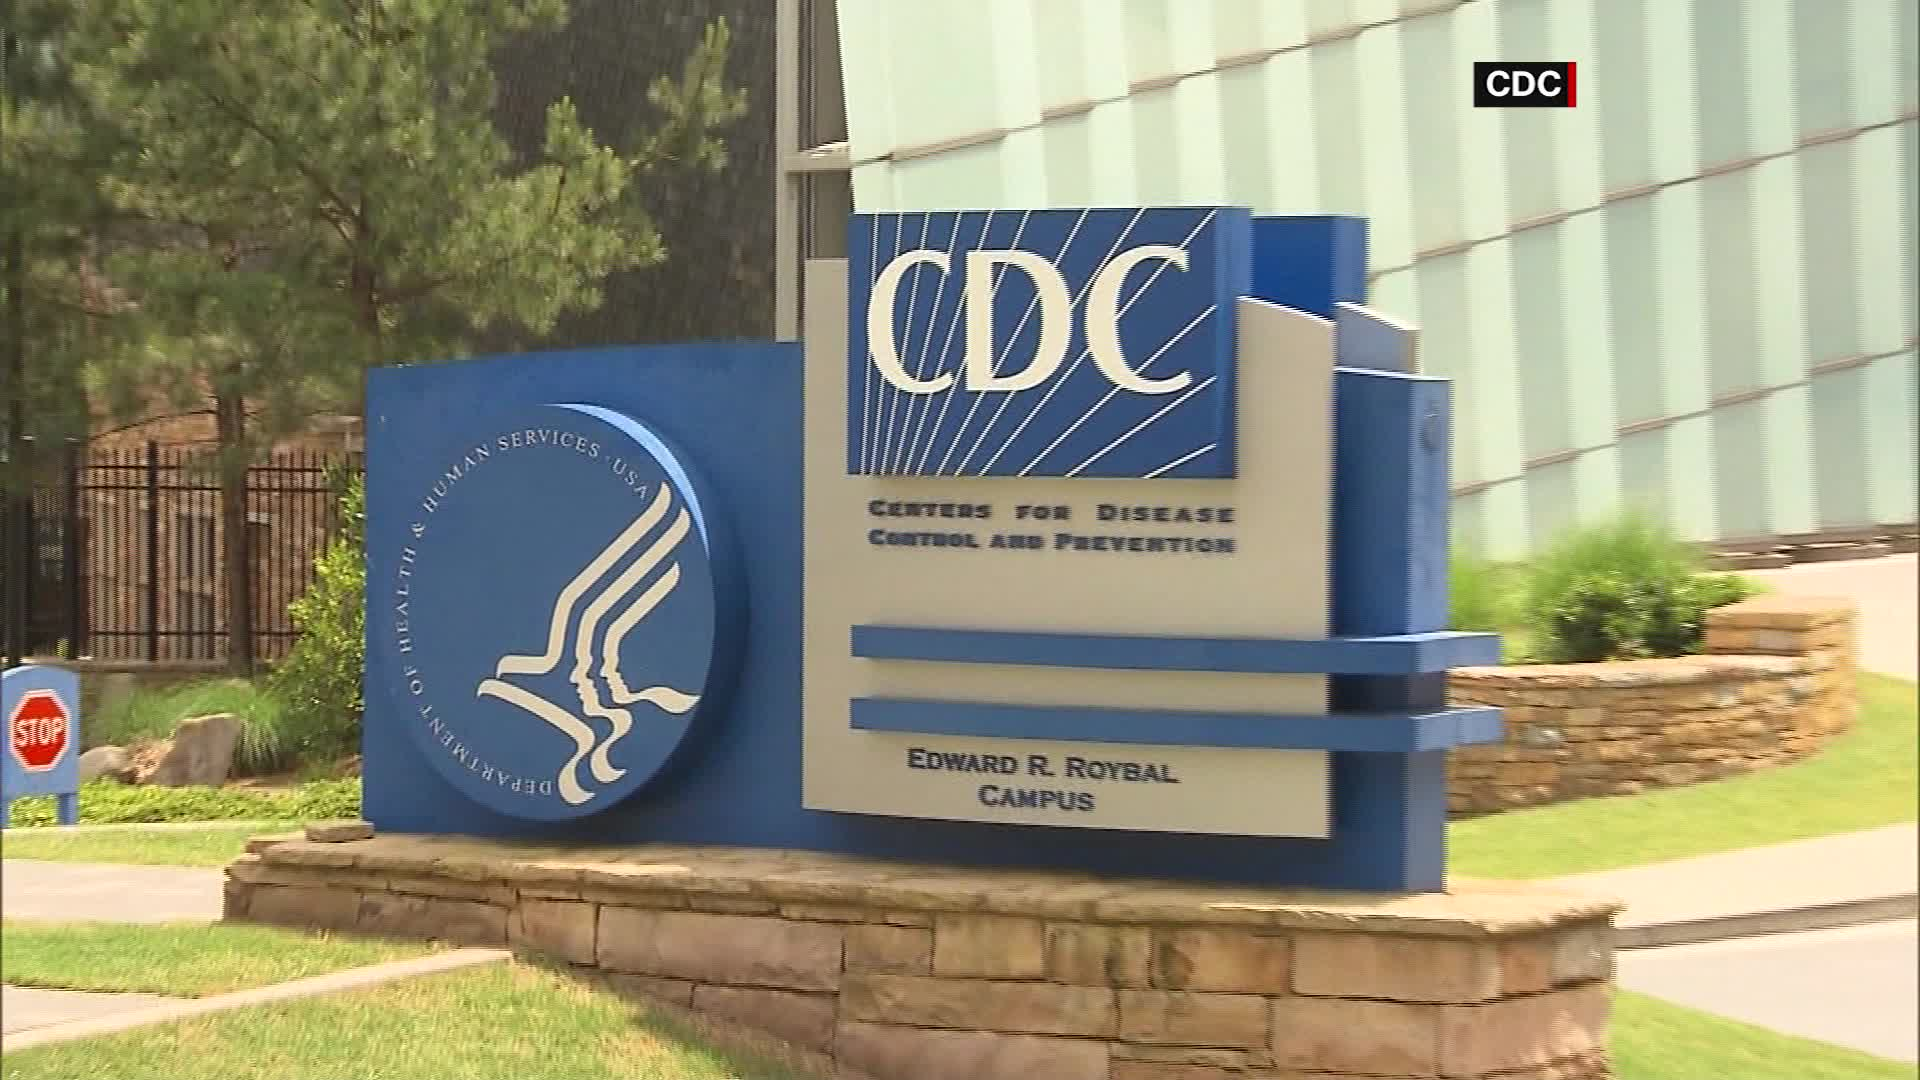 Coronavirus shutdown causes new risk at CDC: Legionnaire's disease